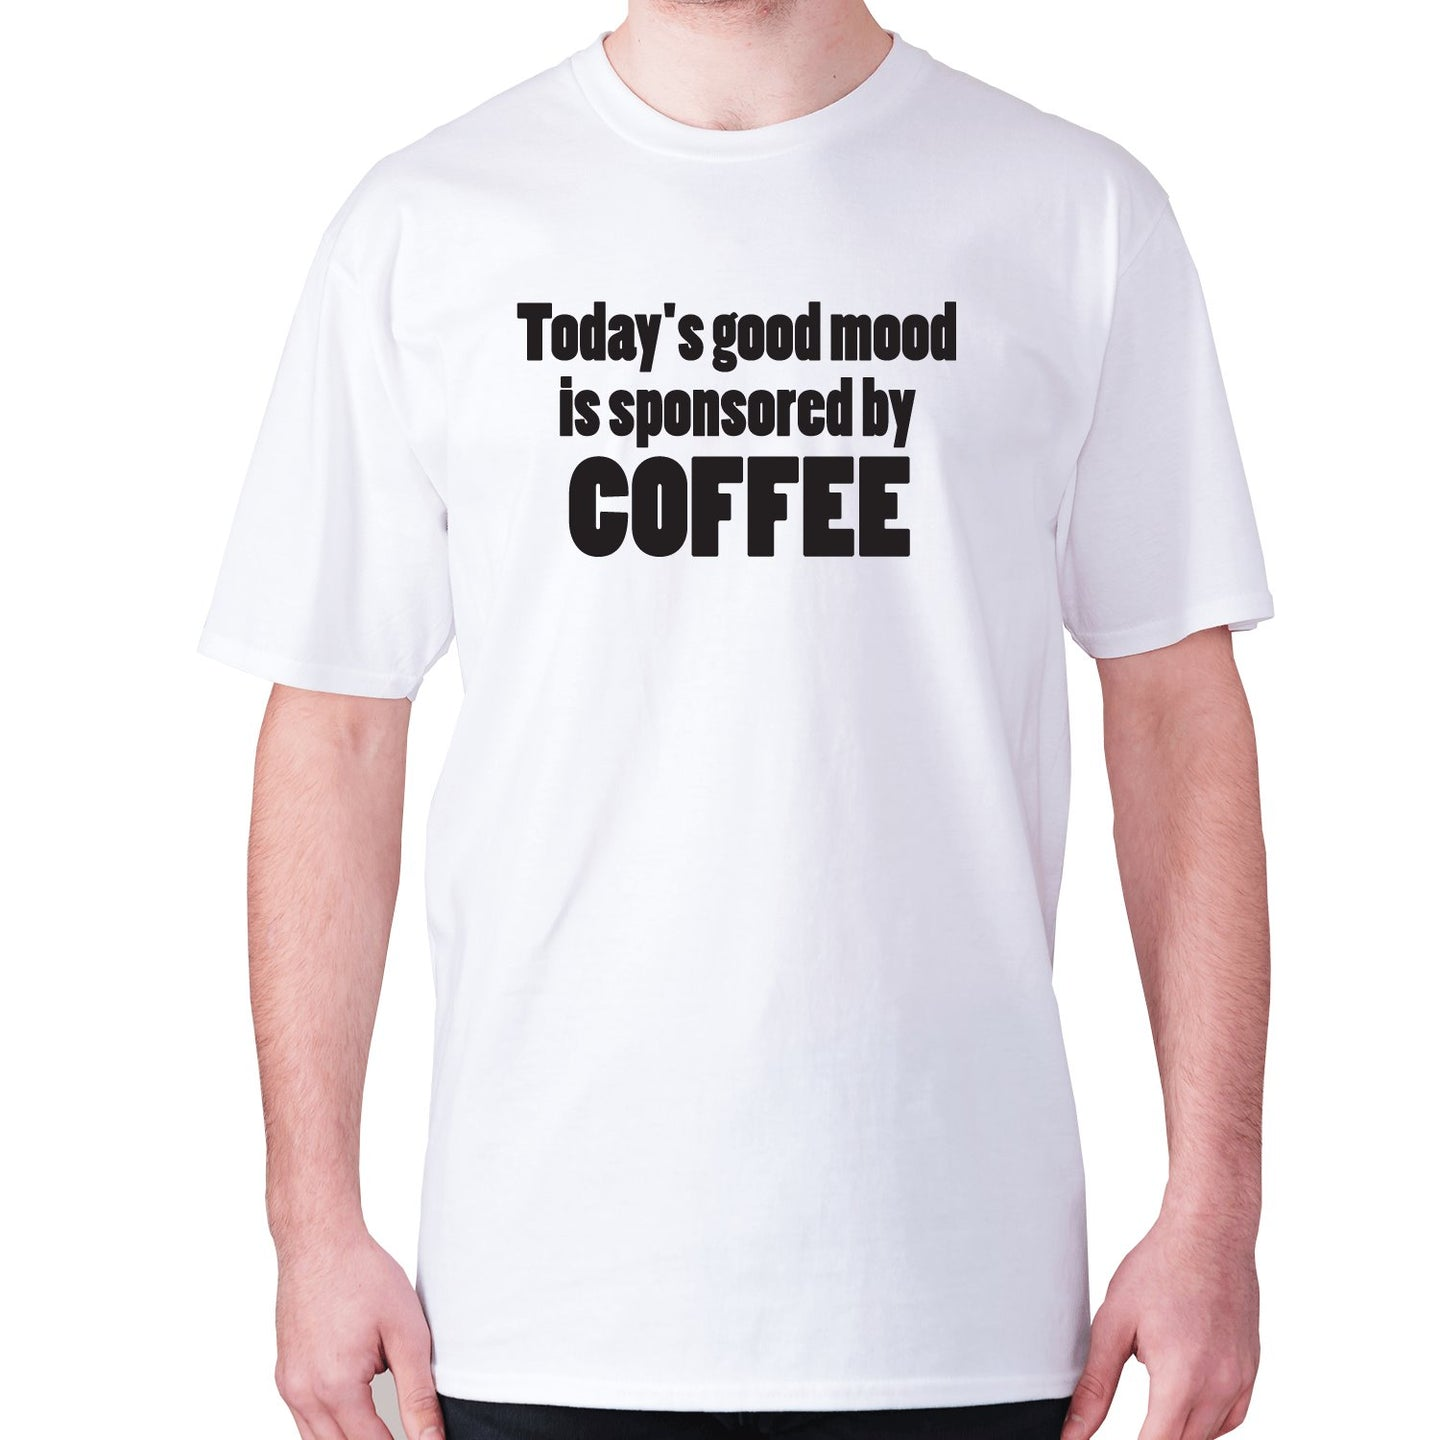 Today's good mood is sponsored by coffee - men's premium t-shirt - White / S - Graphic Gear